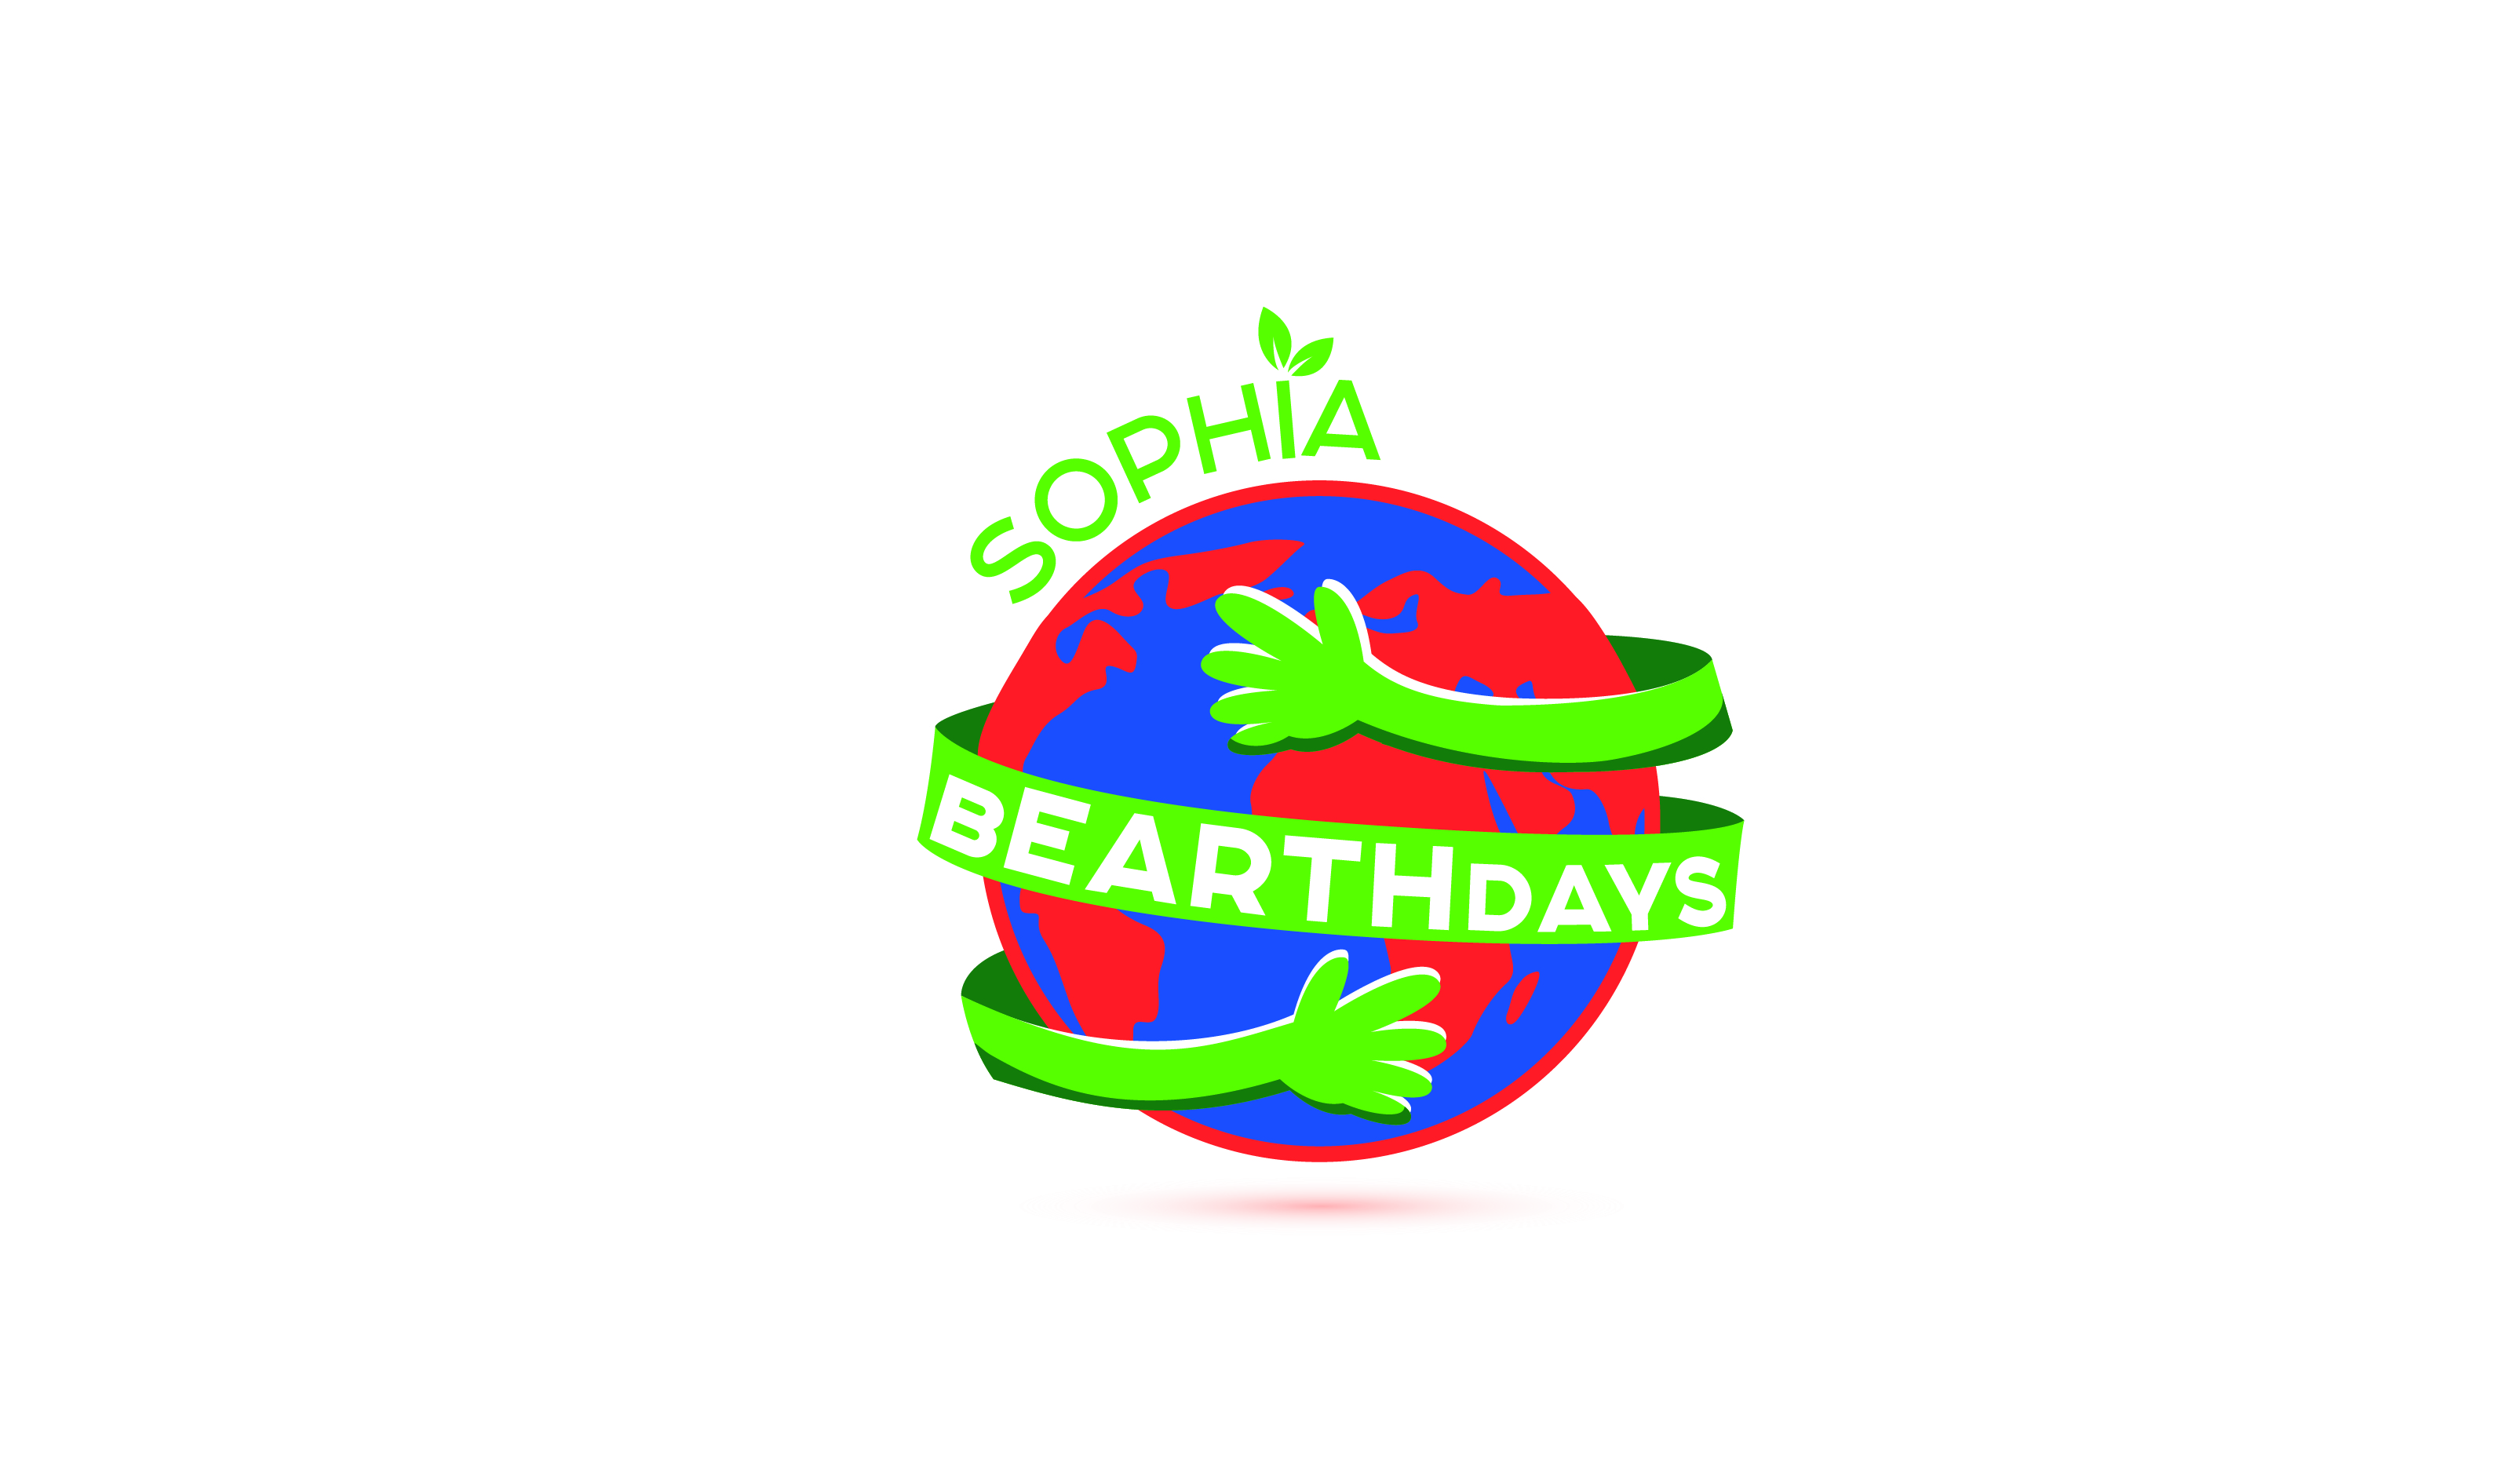 Euclyde Data Center fier sponsor des Sophia Bearthdays !